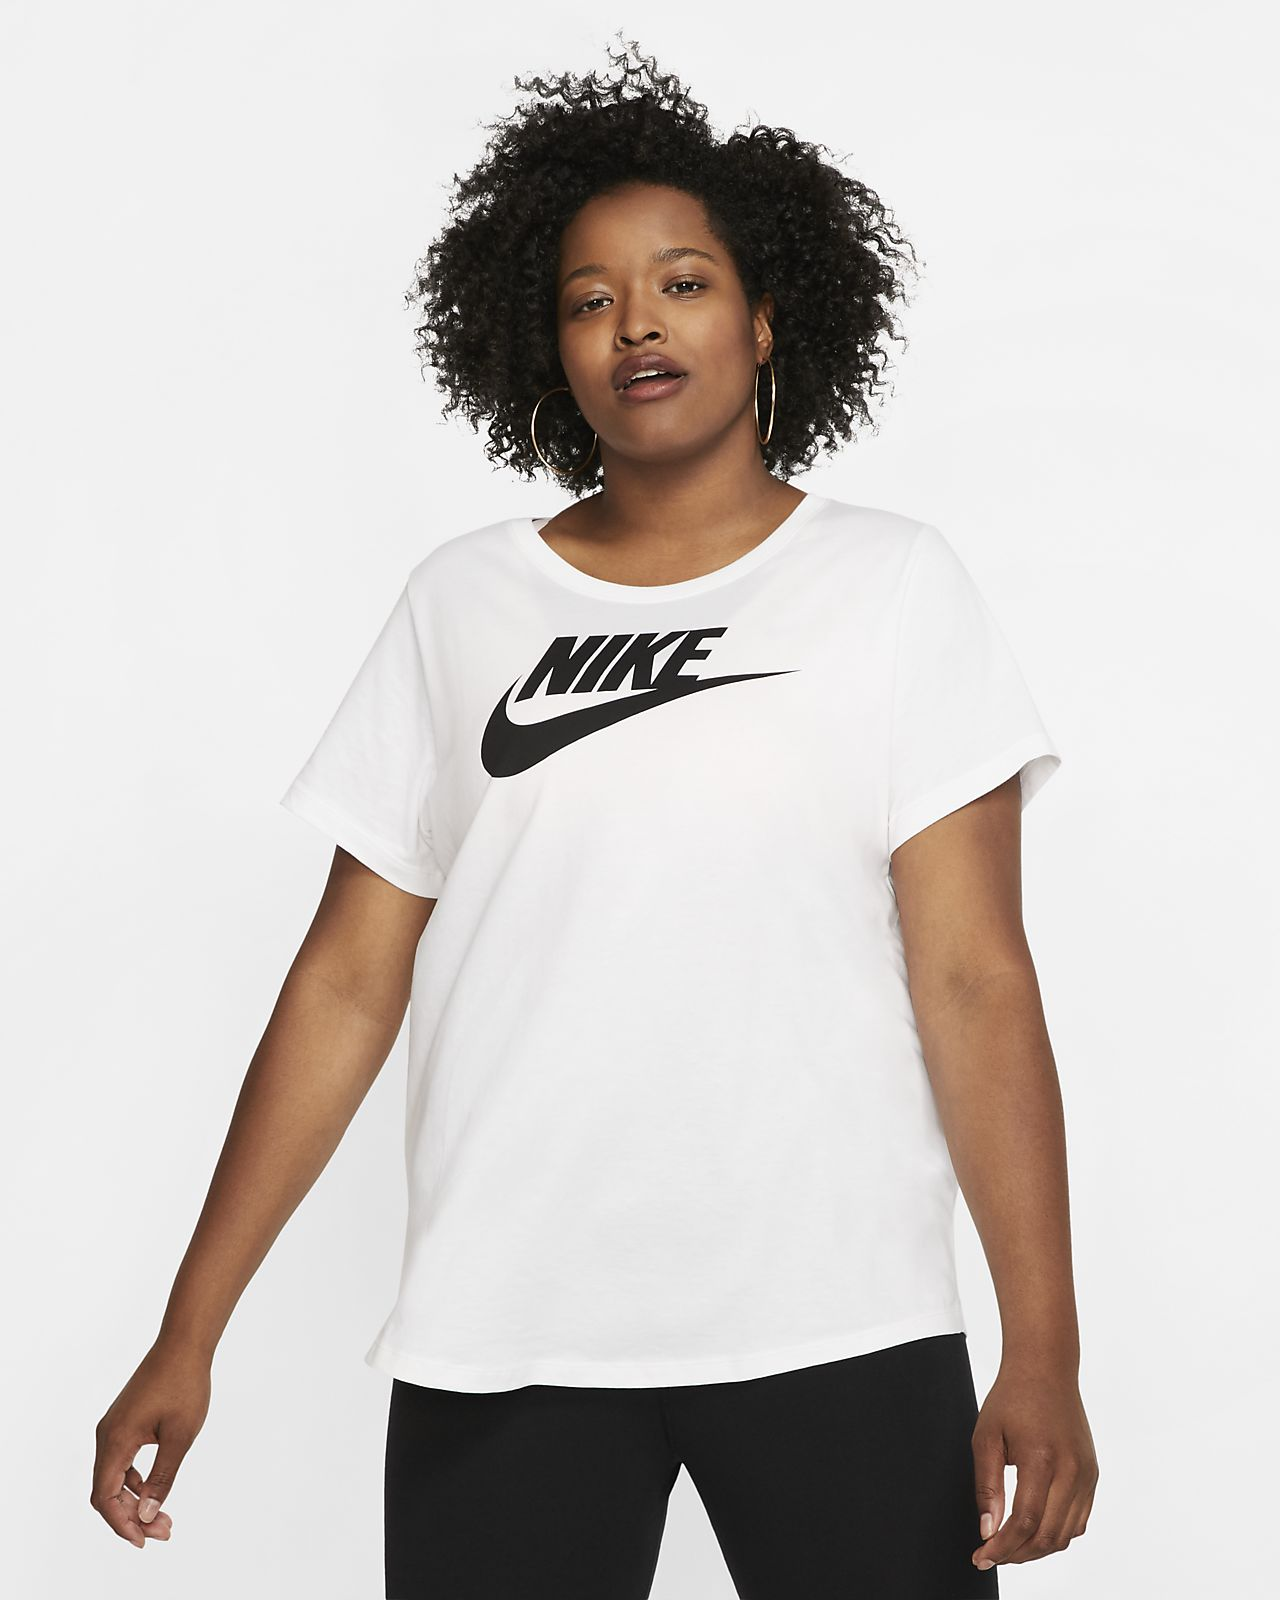 Tee-shirt Nike Sportswear Essential pour Femme (grande taille)